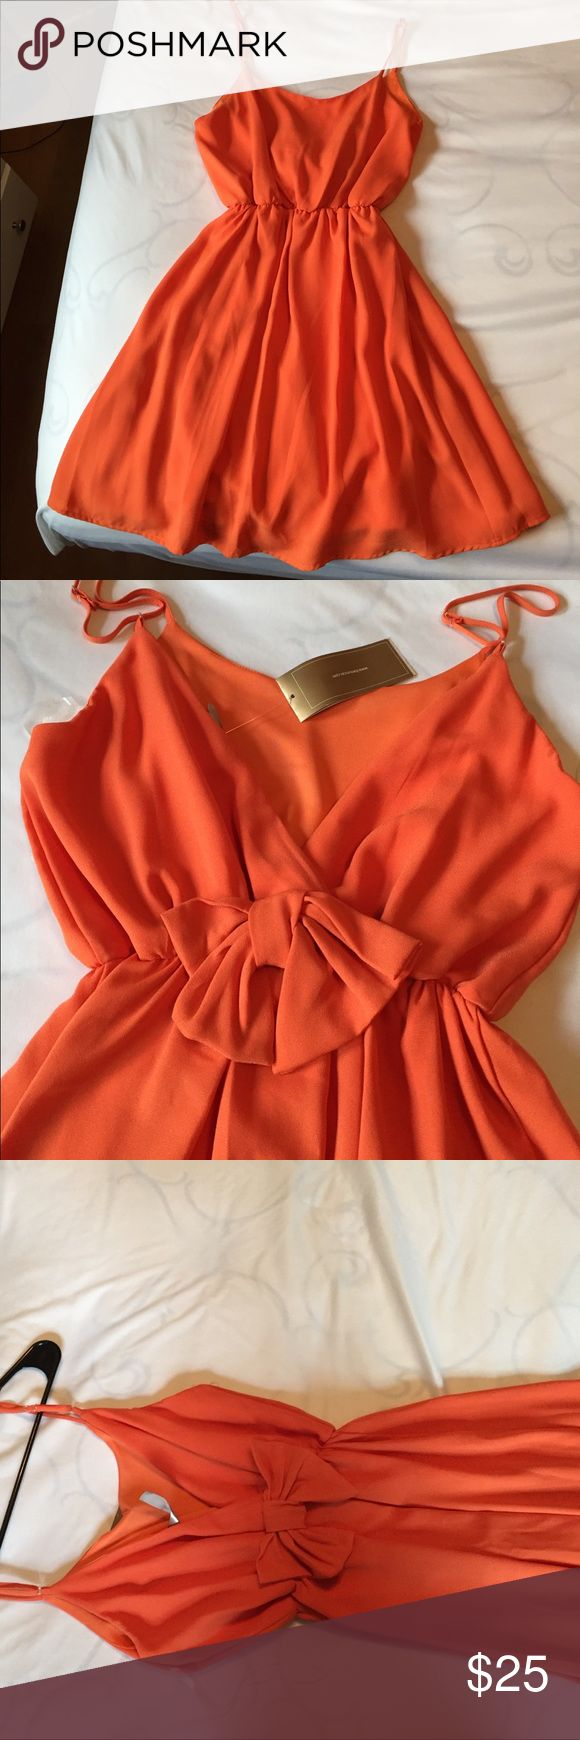 Adorable summer dress! Low back with bow detail! Perfect beach dress/swim cover up! This dress has a V line low back with a pretty bow, the front is simple bet super flattering! Great summer wardrobe addition! Francesca's Collections Dresses Backless